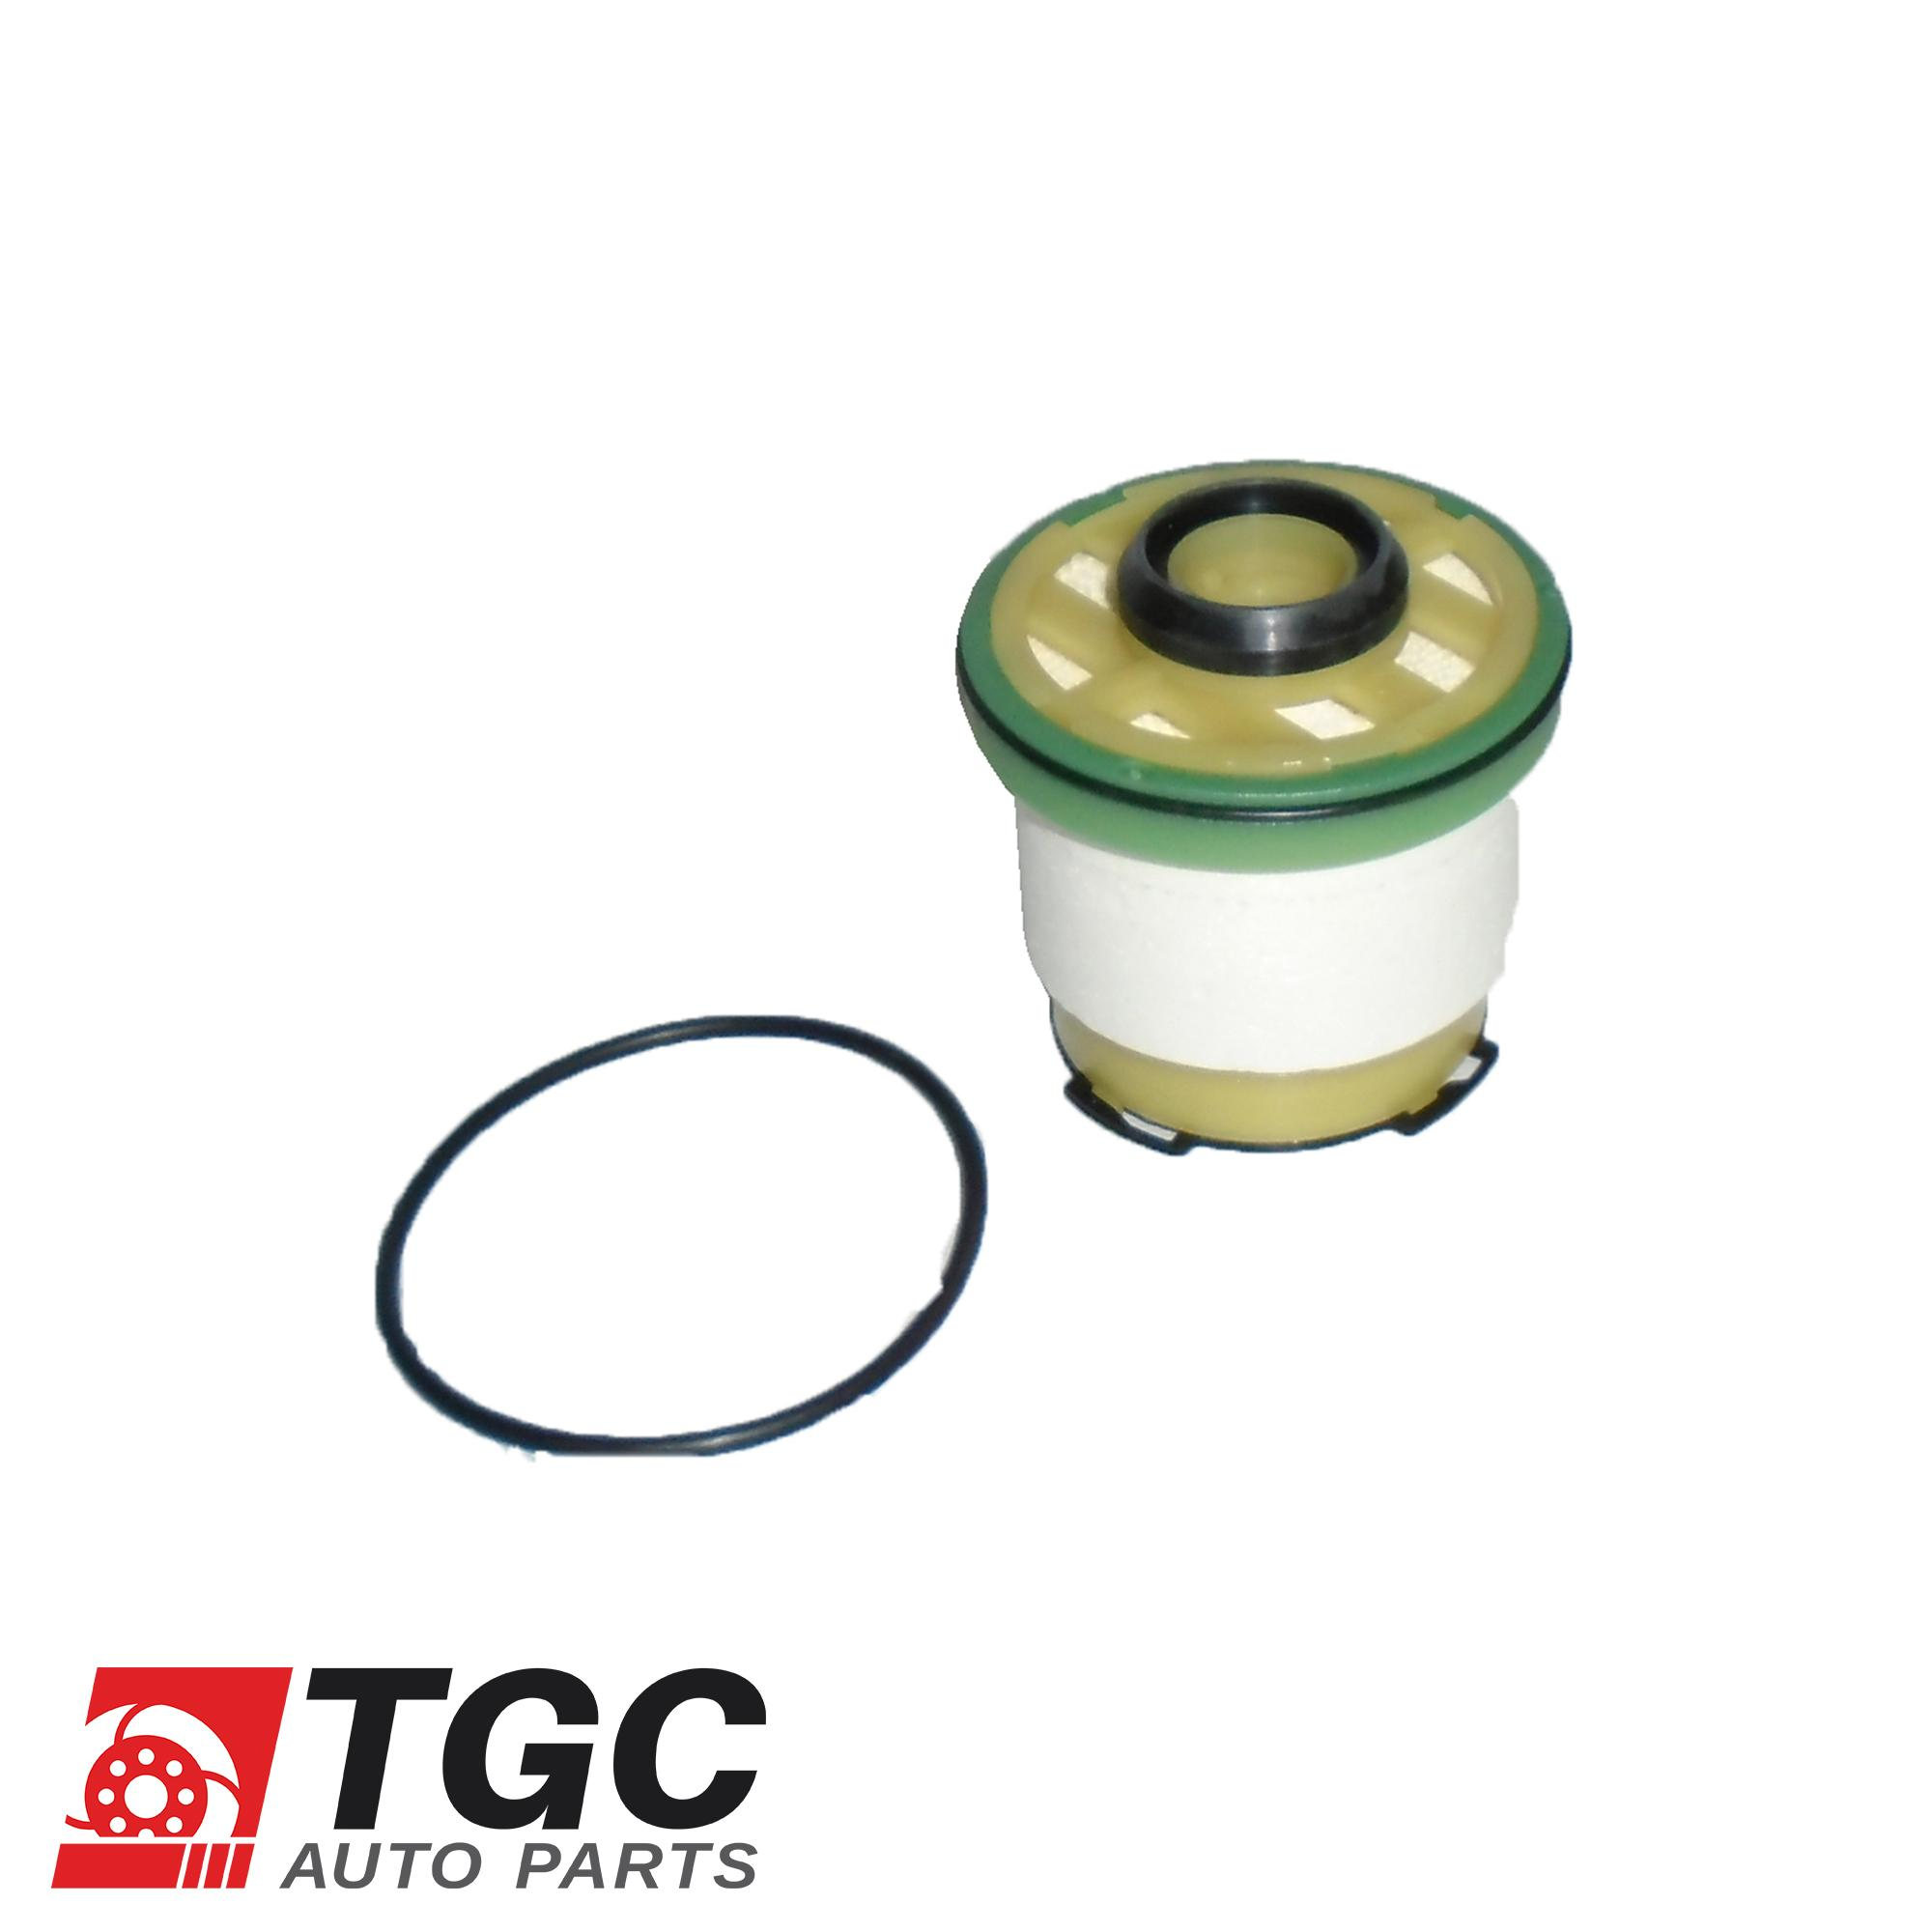 Fuel Filter For Sale Gas Online Brands Prices Reviews In 2001 Explorer Sport Trac Fleetmax Ffs 1640 Ford Ranger 22 Tdci Diesel 2012 2016